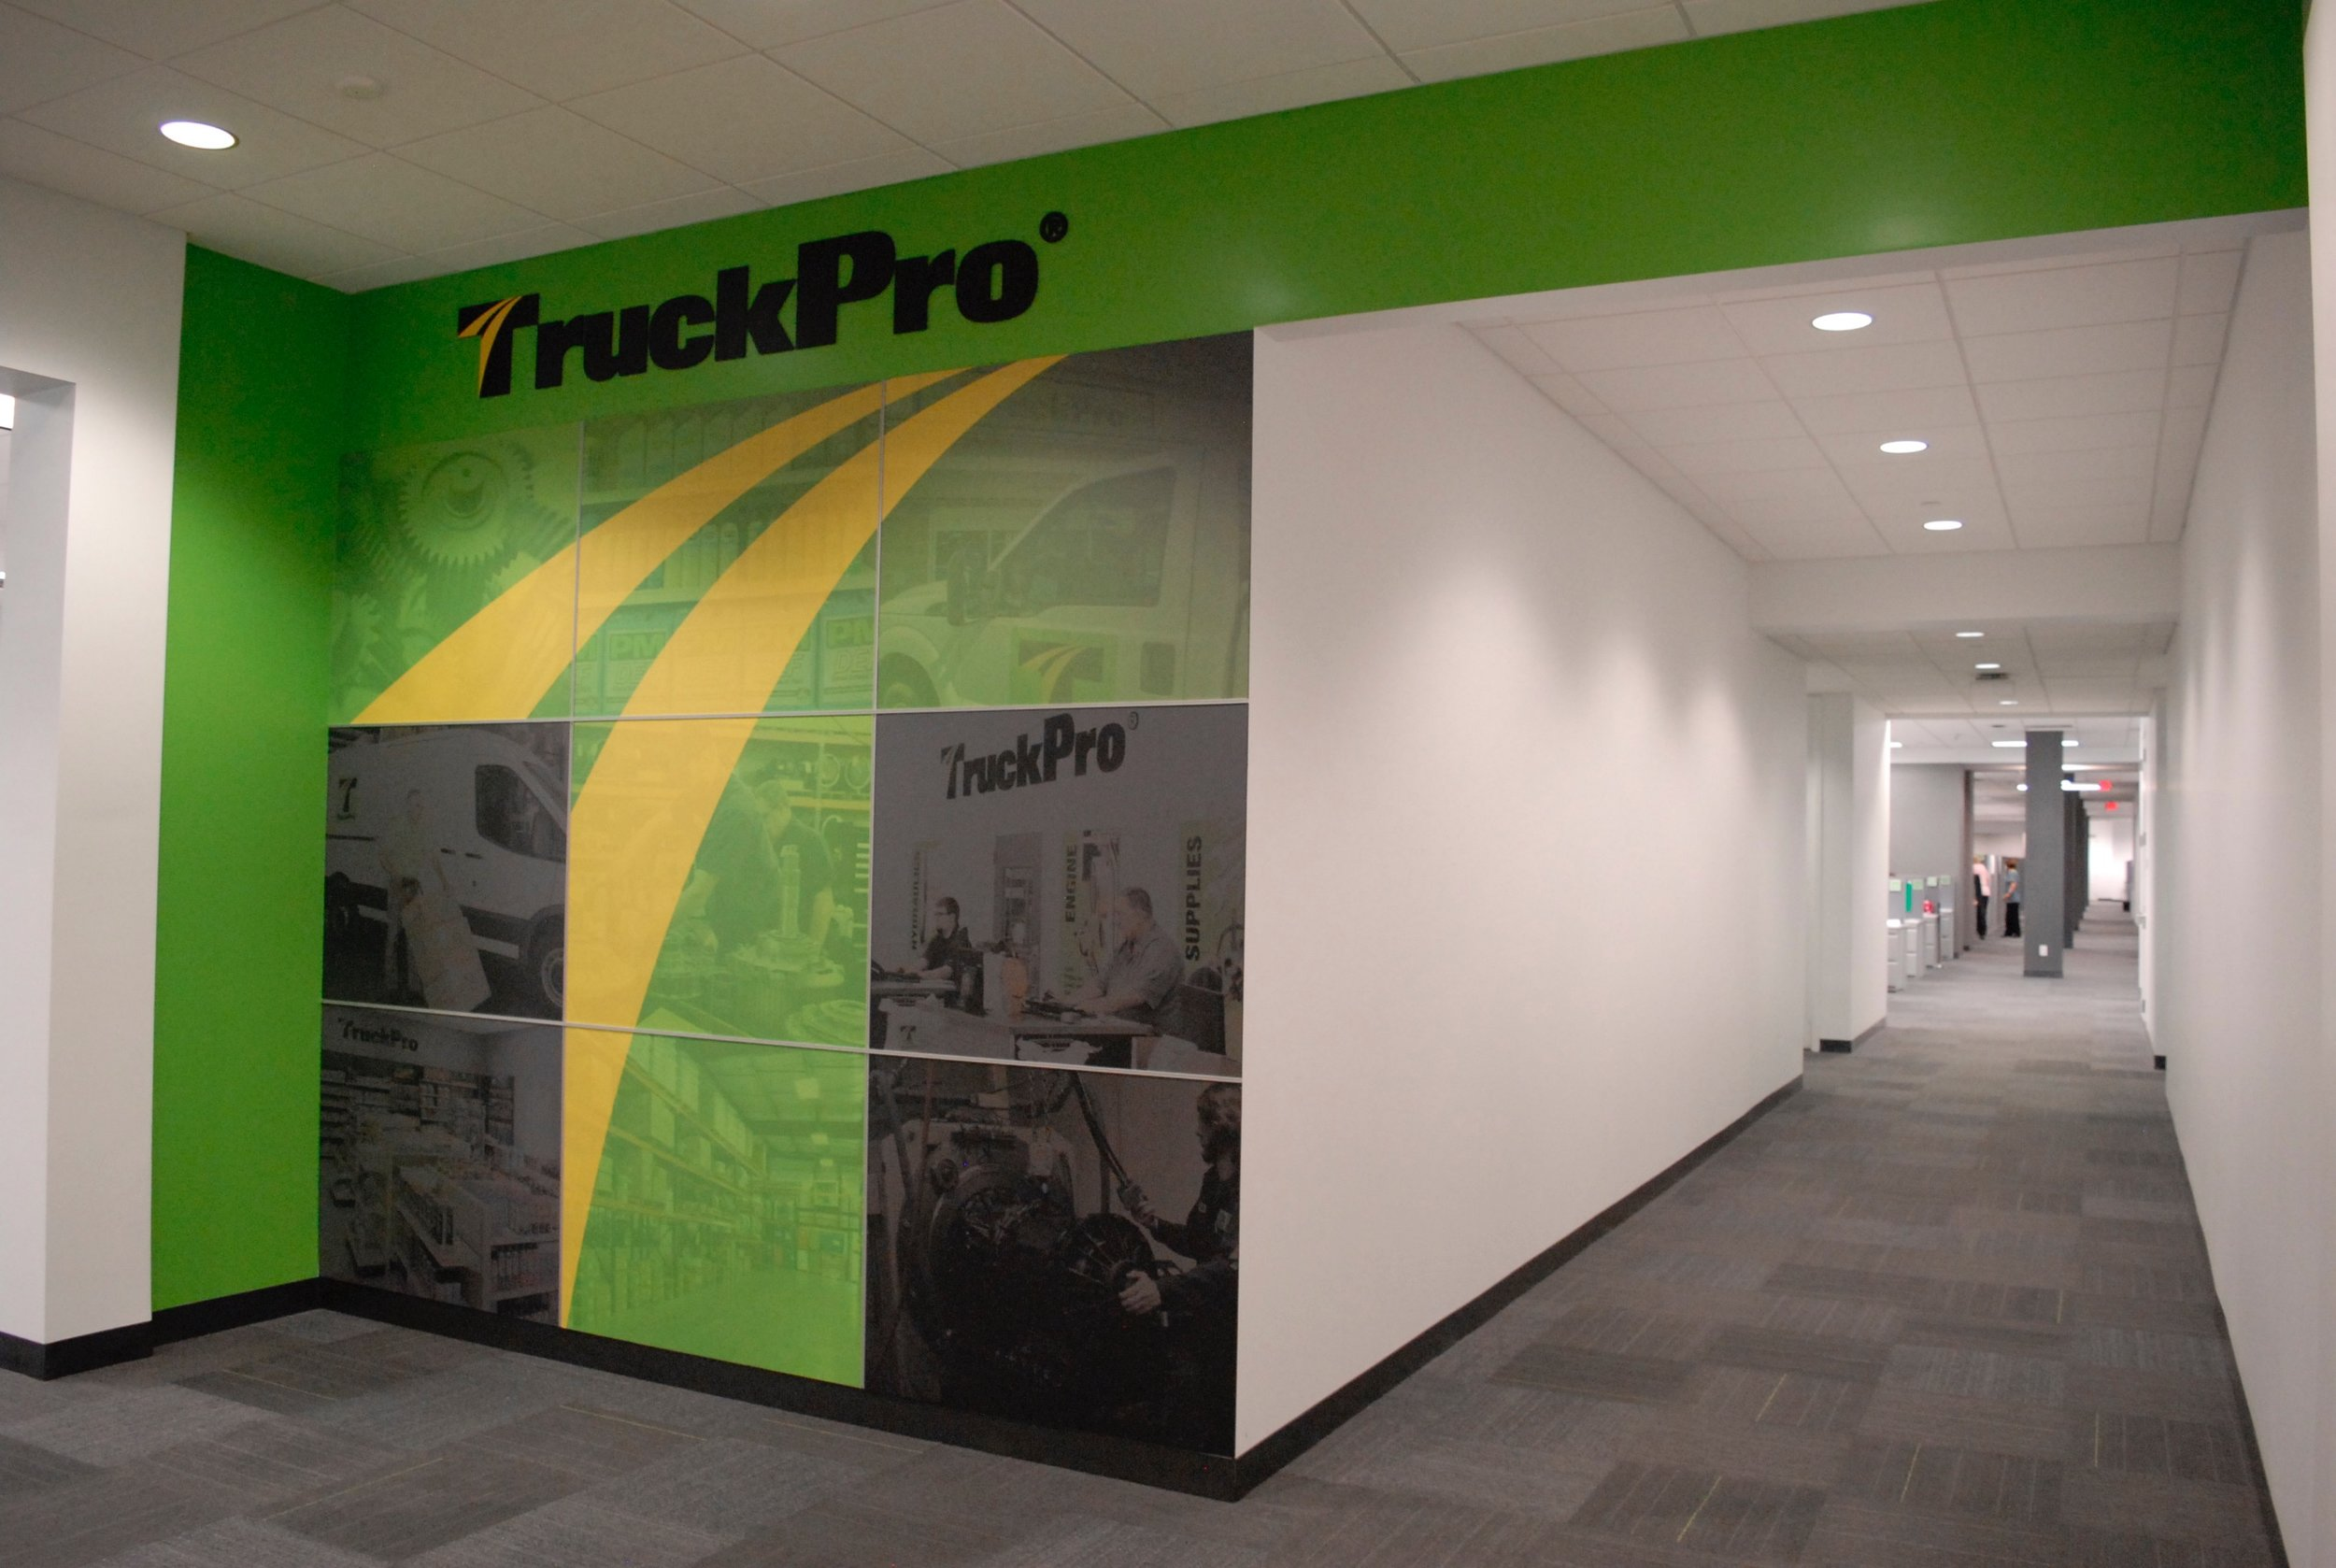 TruckPro_Employee-Entry-Wall_Environmental-Graphics_Finished-Product_Dreamcapture_Memphis-TN_2